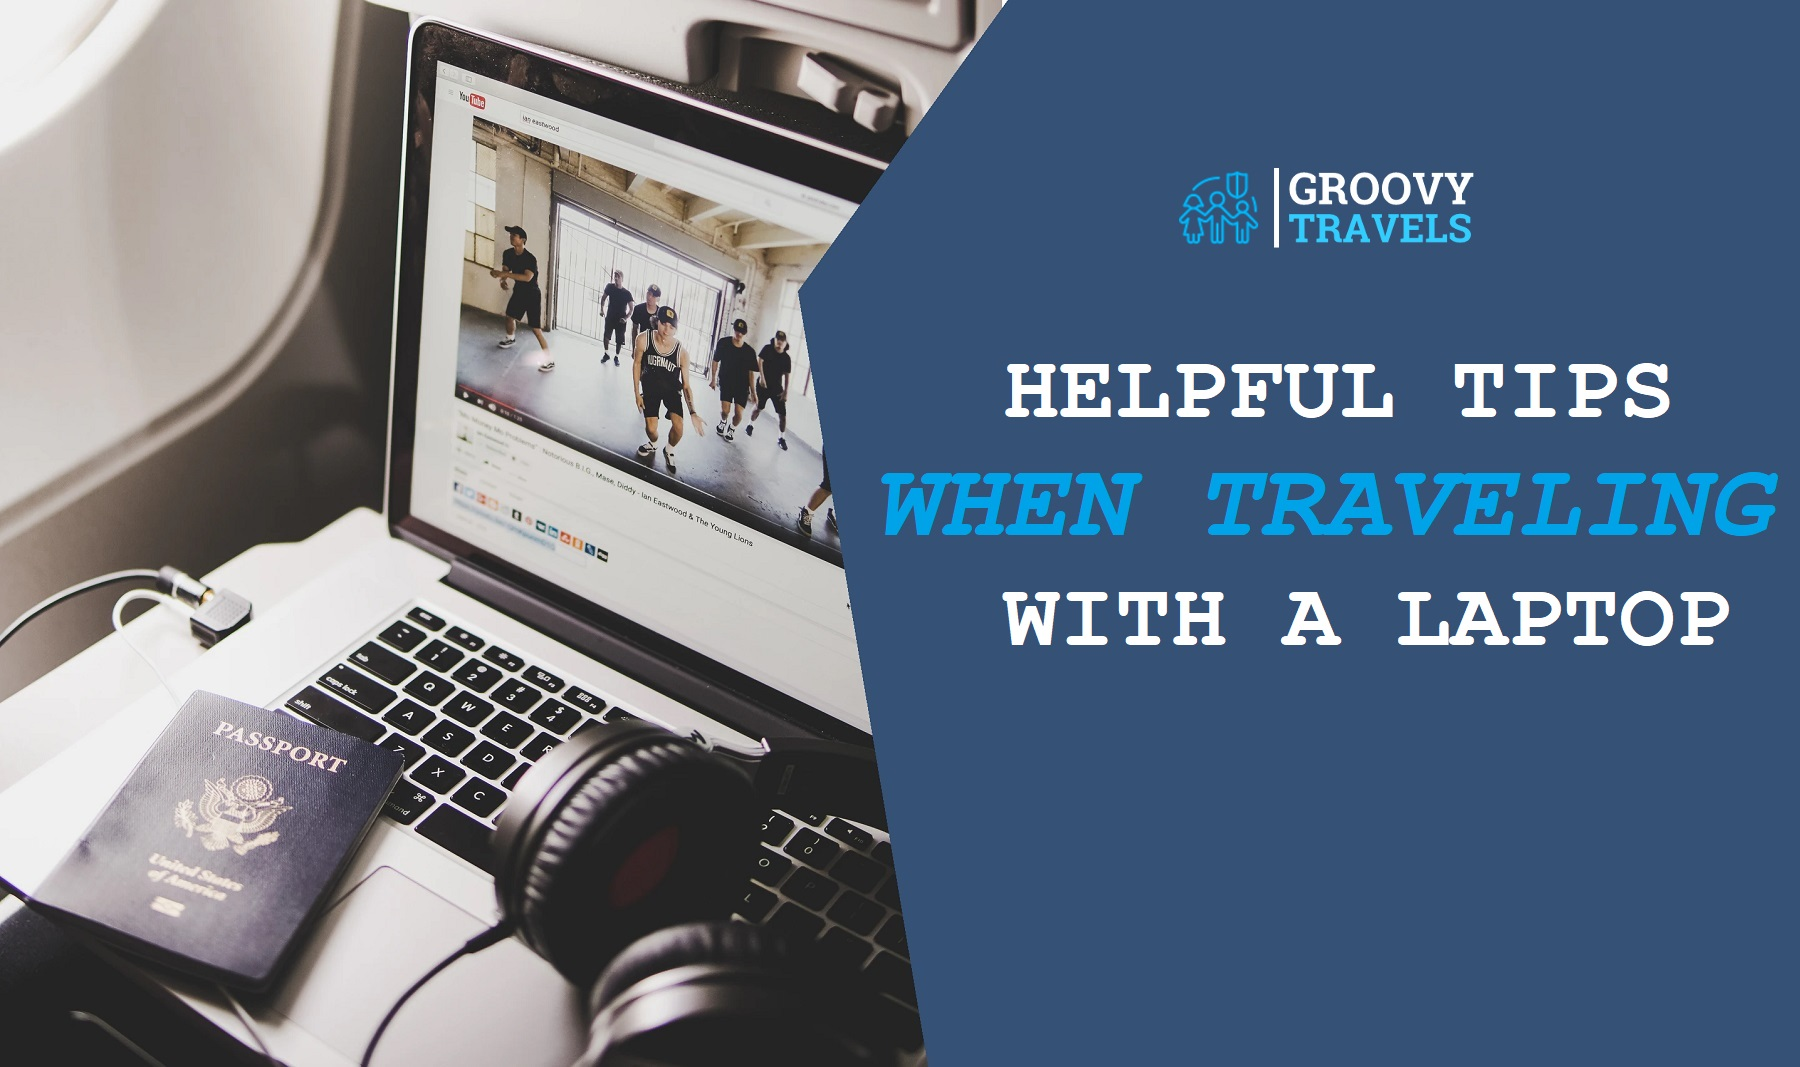 Helpful Tips When Traveling With A Laptop